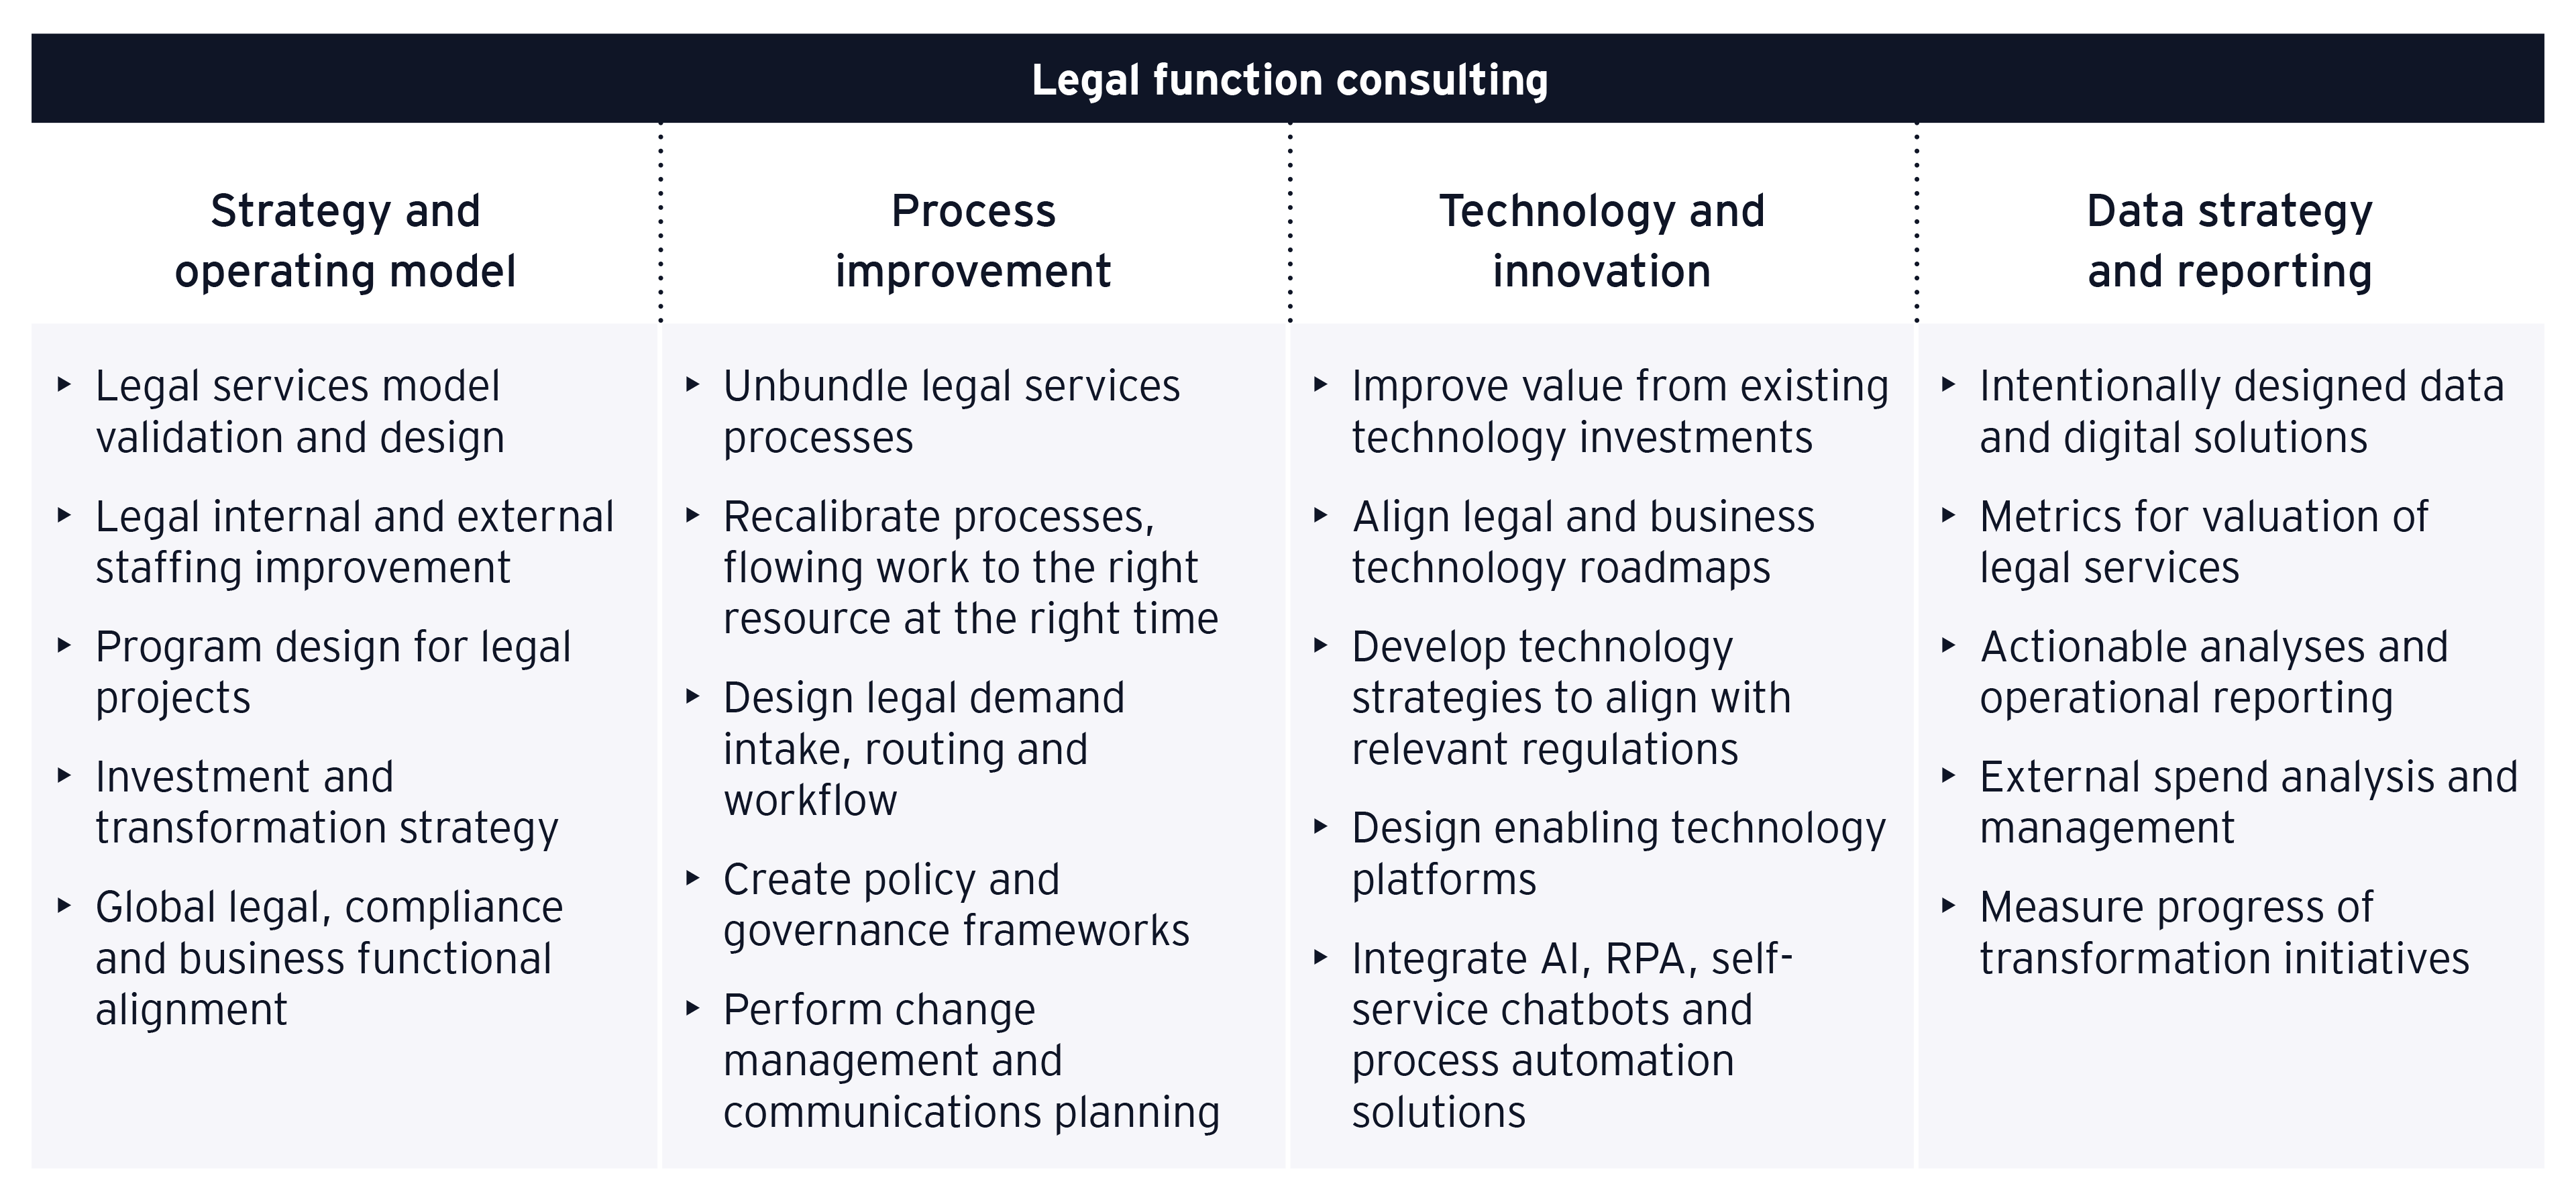 EY legal function consulting services